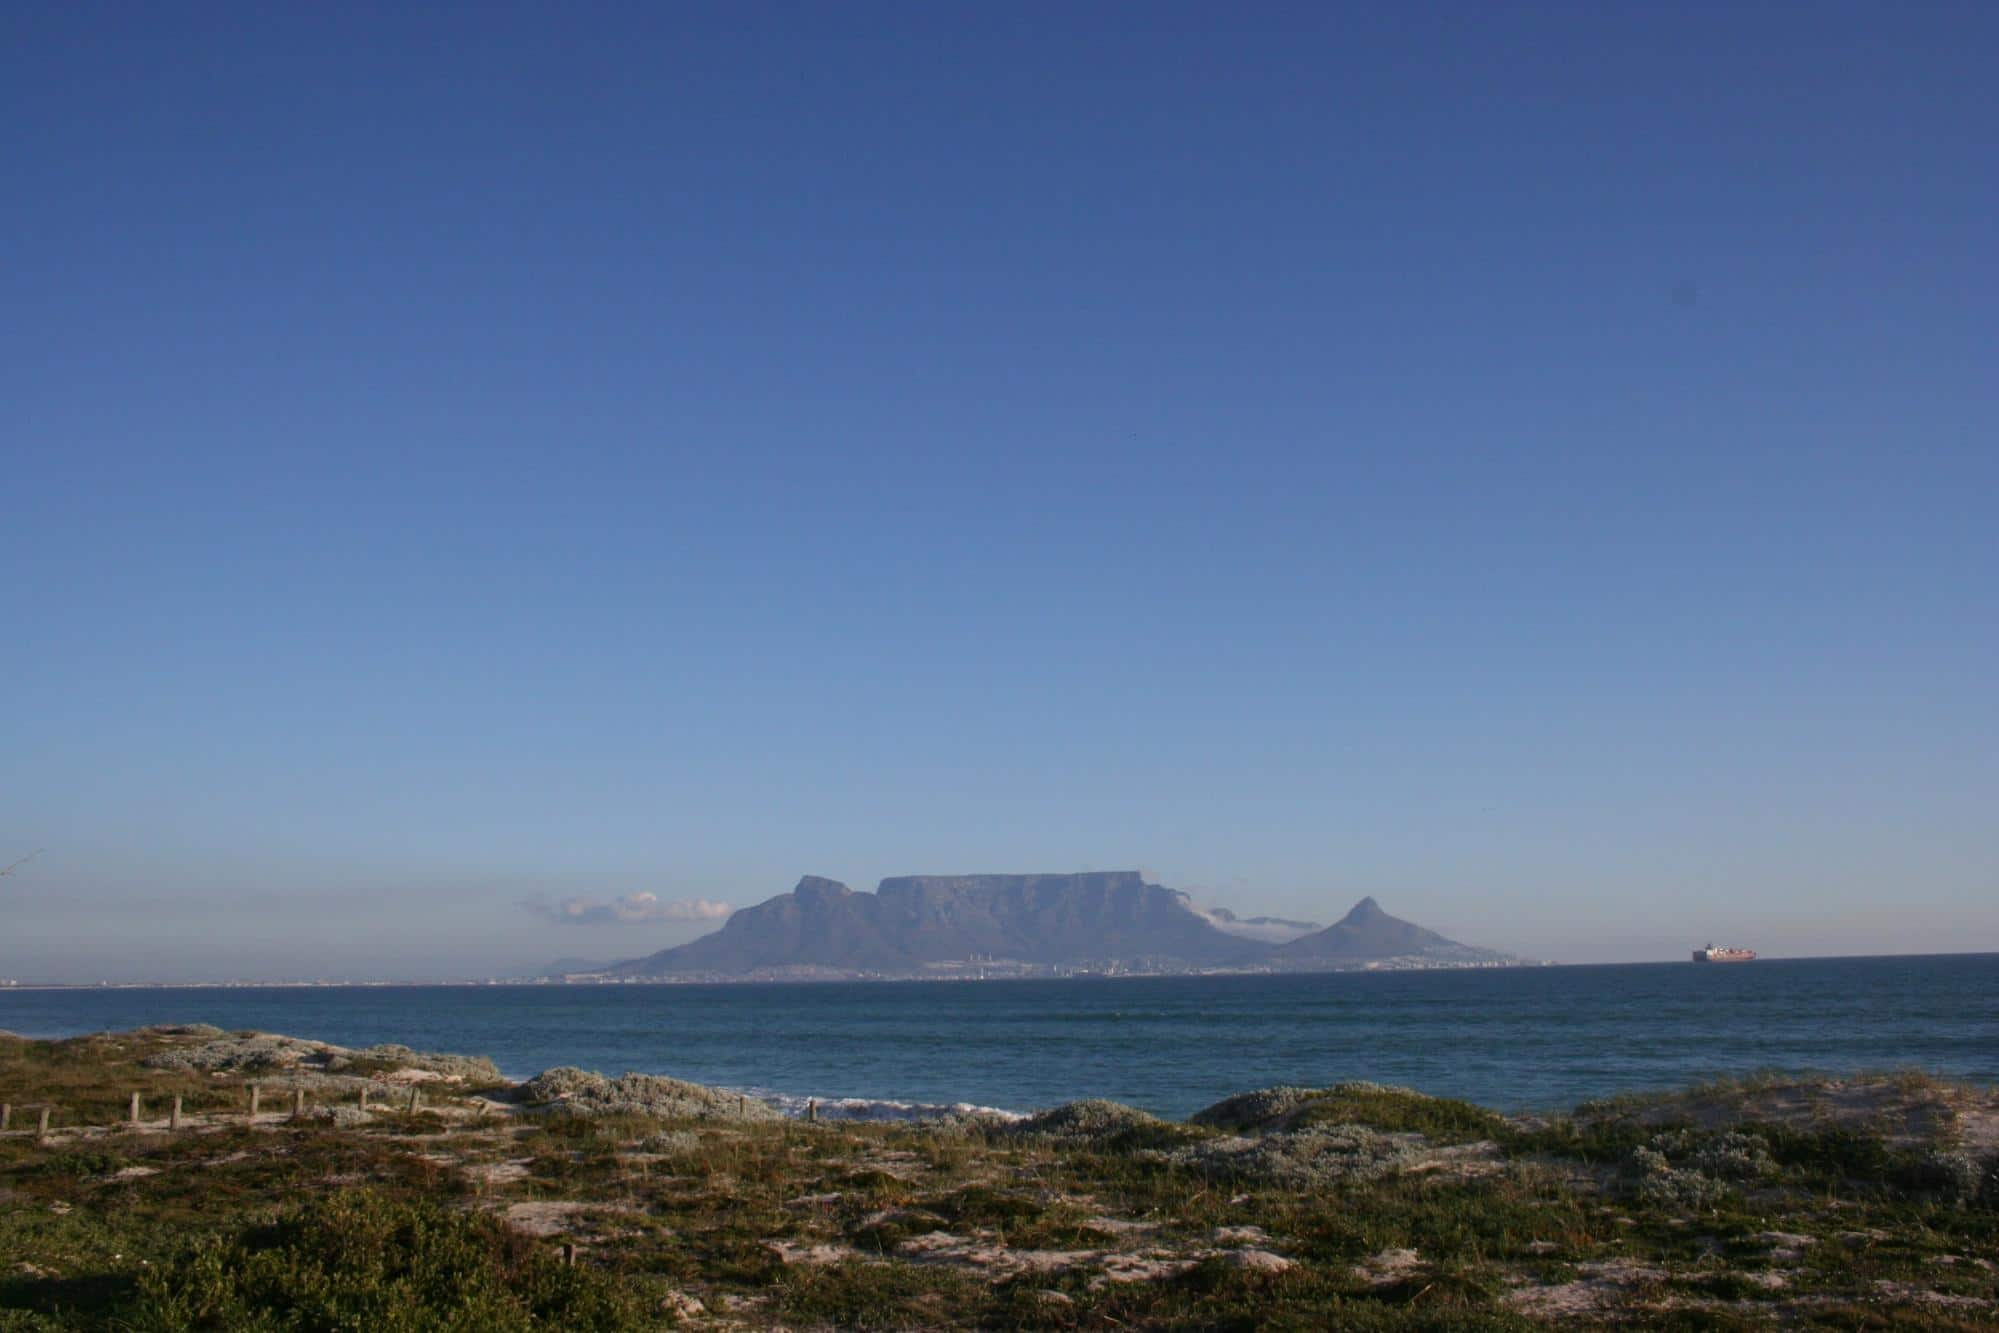 Table Mountain, what the first Europeans saw when arriving at the Cape of Good Hope